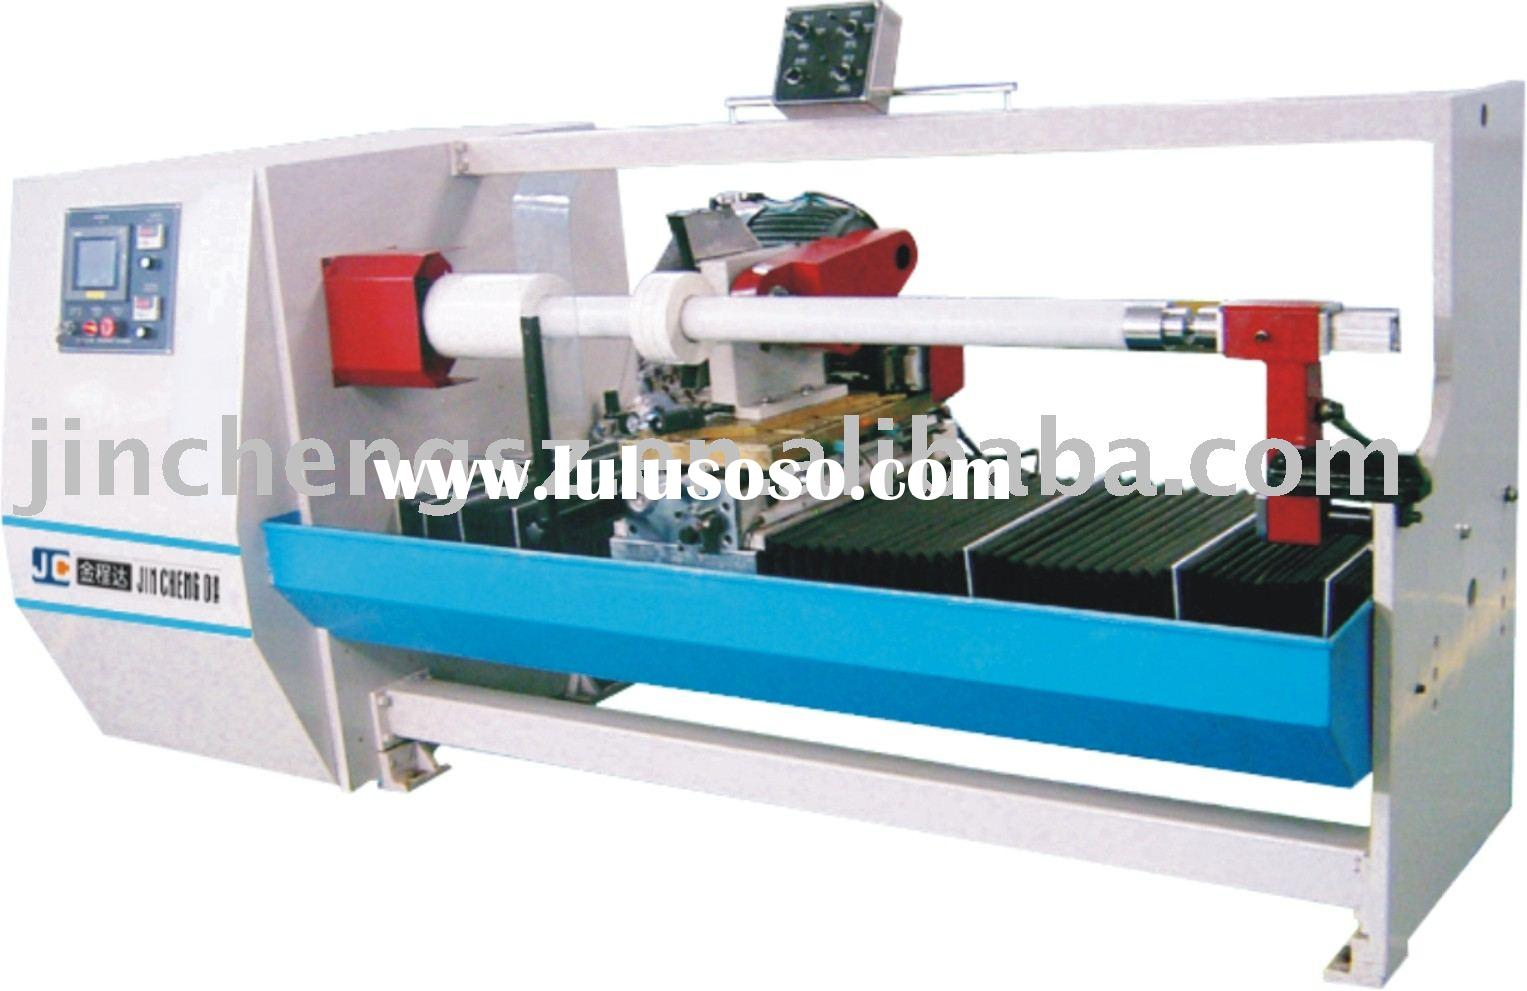 Adhesive tape cutting machine/cutting machine/slitting machine